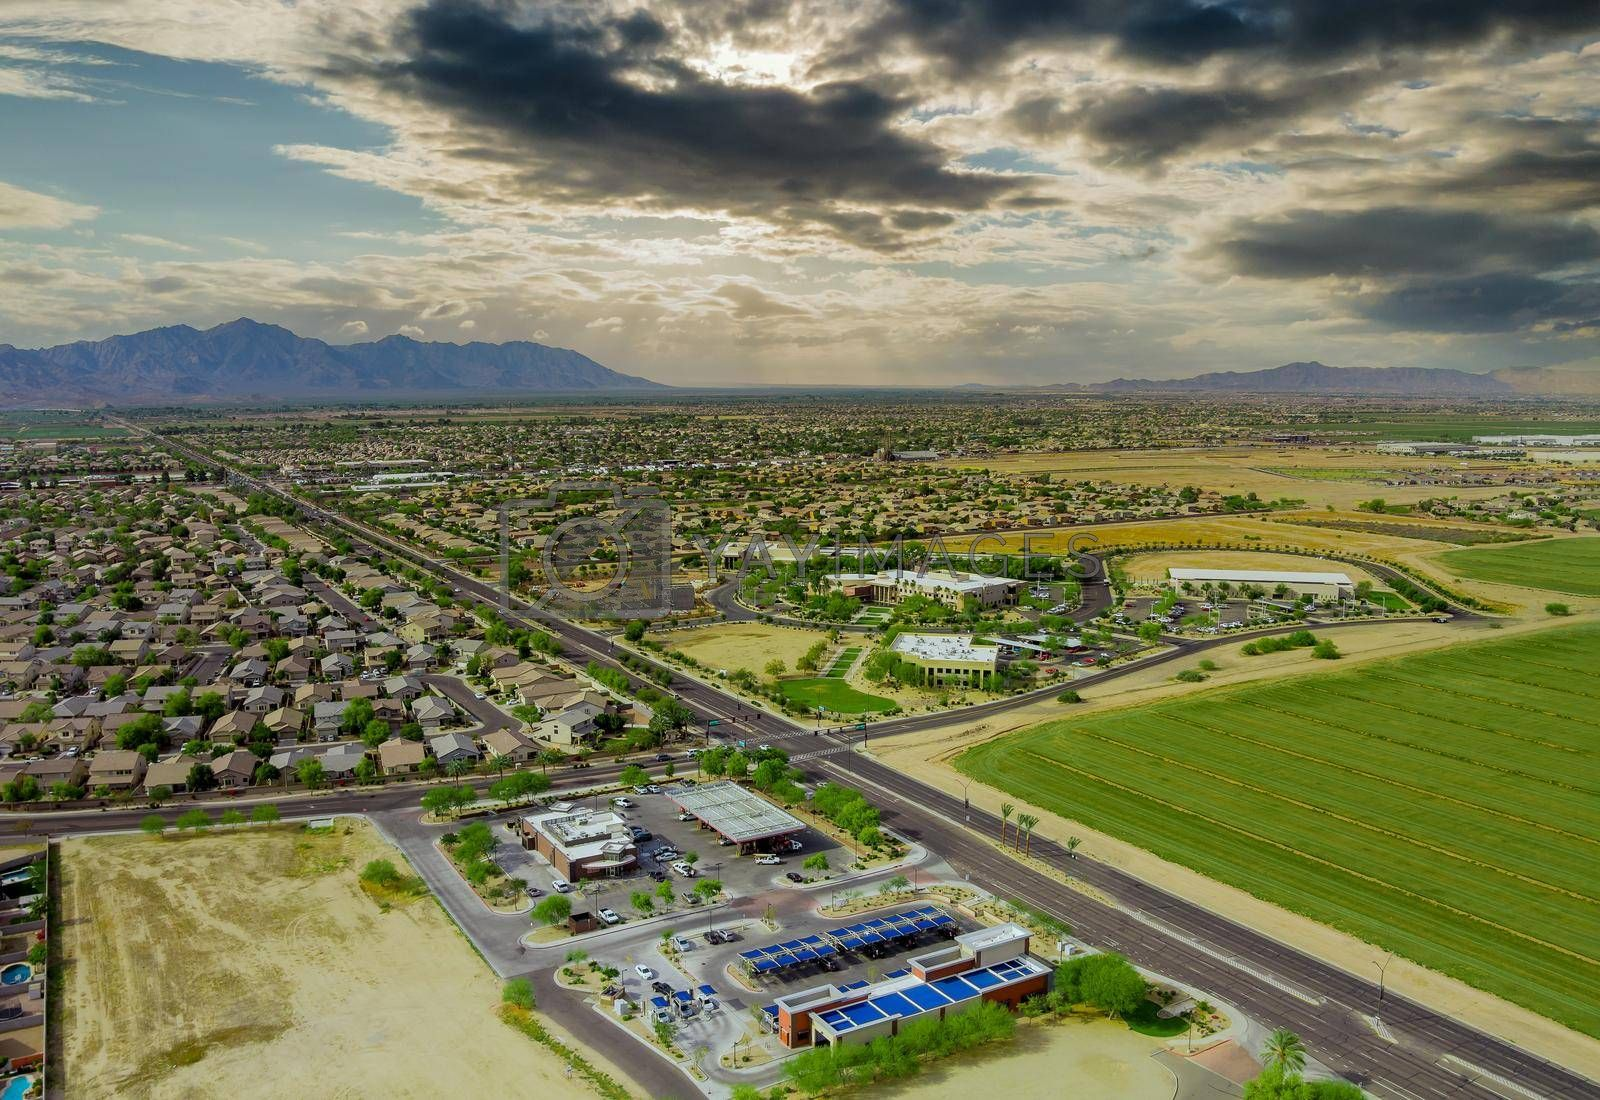 Aerial drone view of small town near mountains area a residential neighborhood with Avondale town Arizona USA